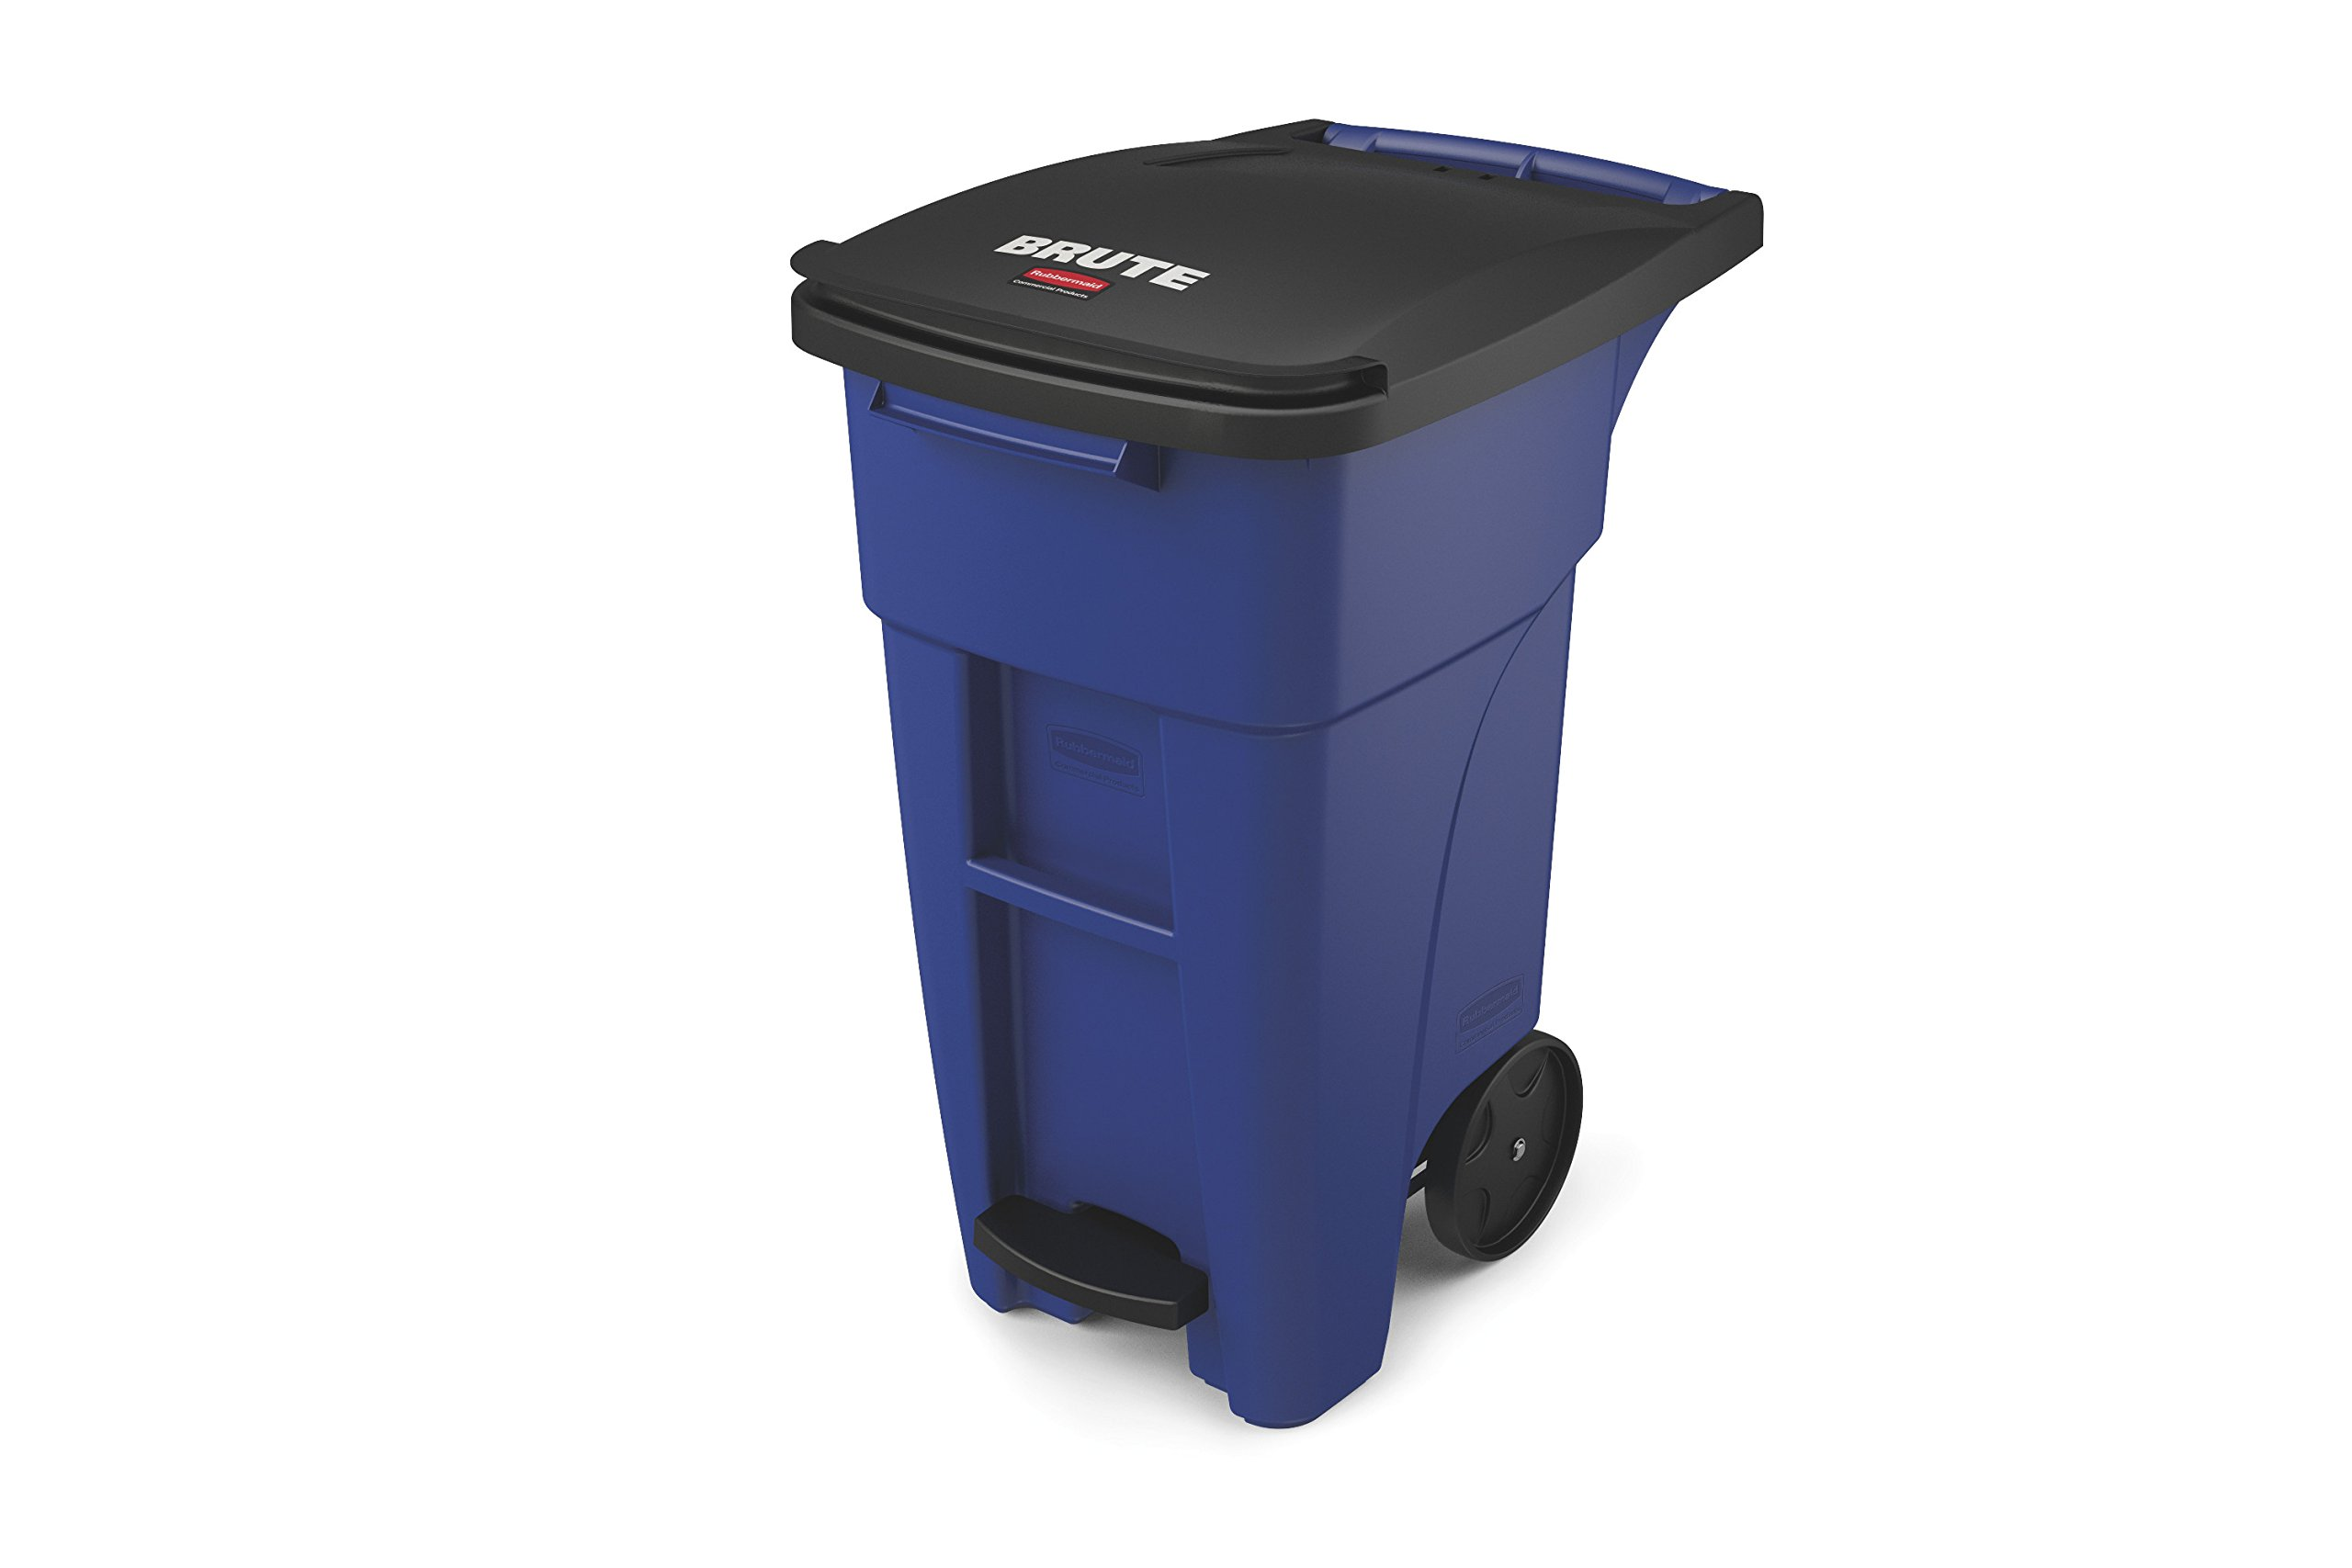 Rubbermaid Commercial 1971958 Brute Step-On Rollout Trash Can, 50 gal/189 L, 39.578'' Height, 24.000'' Width, Blue by Rubbermaid Commercial